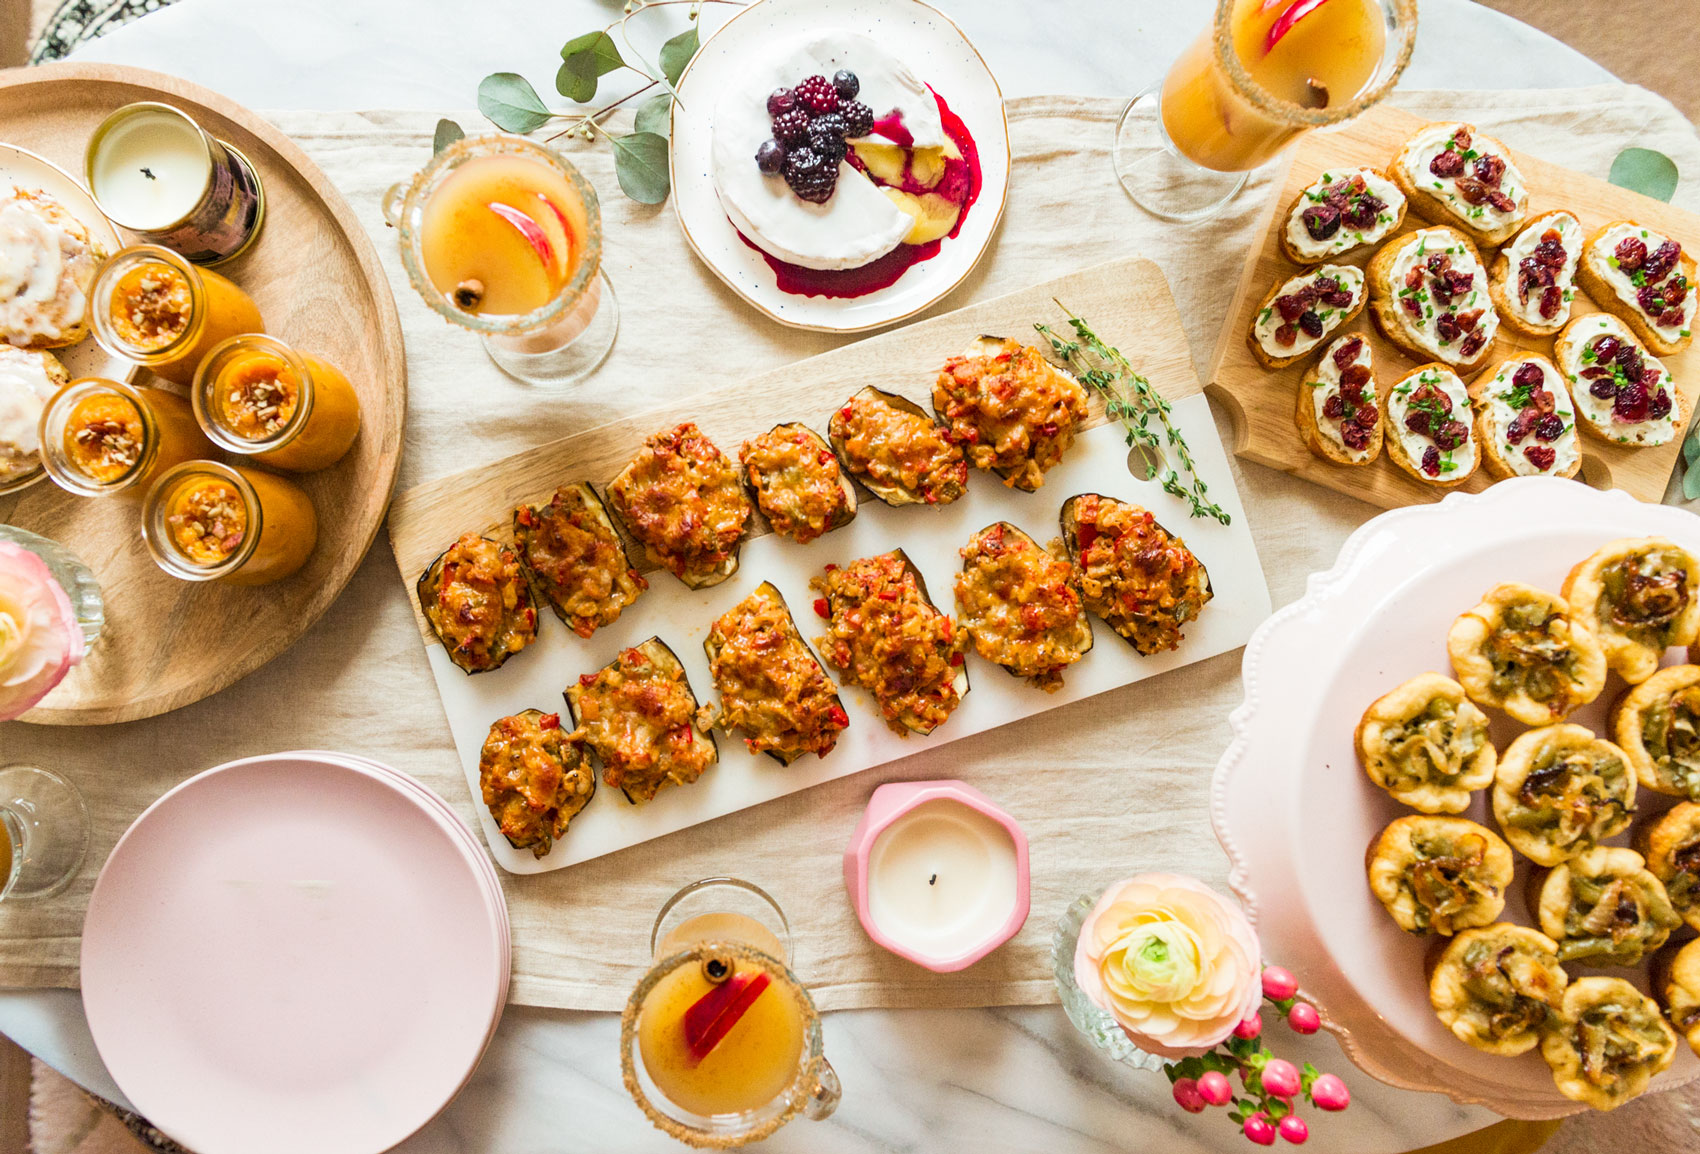 Hosting Thanksgiving this year in your tiny condo? This Friendsgiving styled table includes mini-savory bites to help save space and an all-veggie menu to cater to your vegetarian friends!